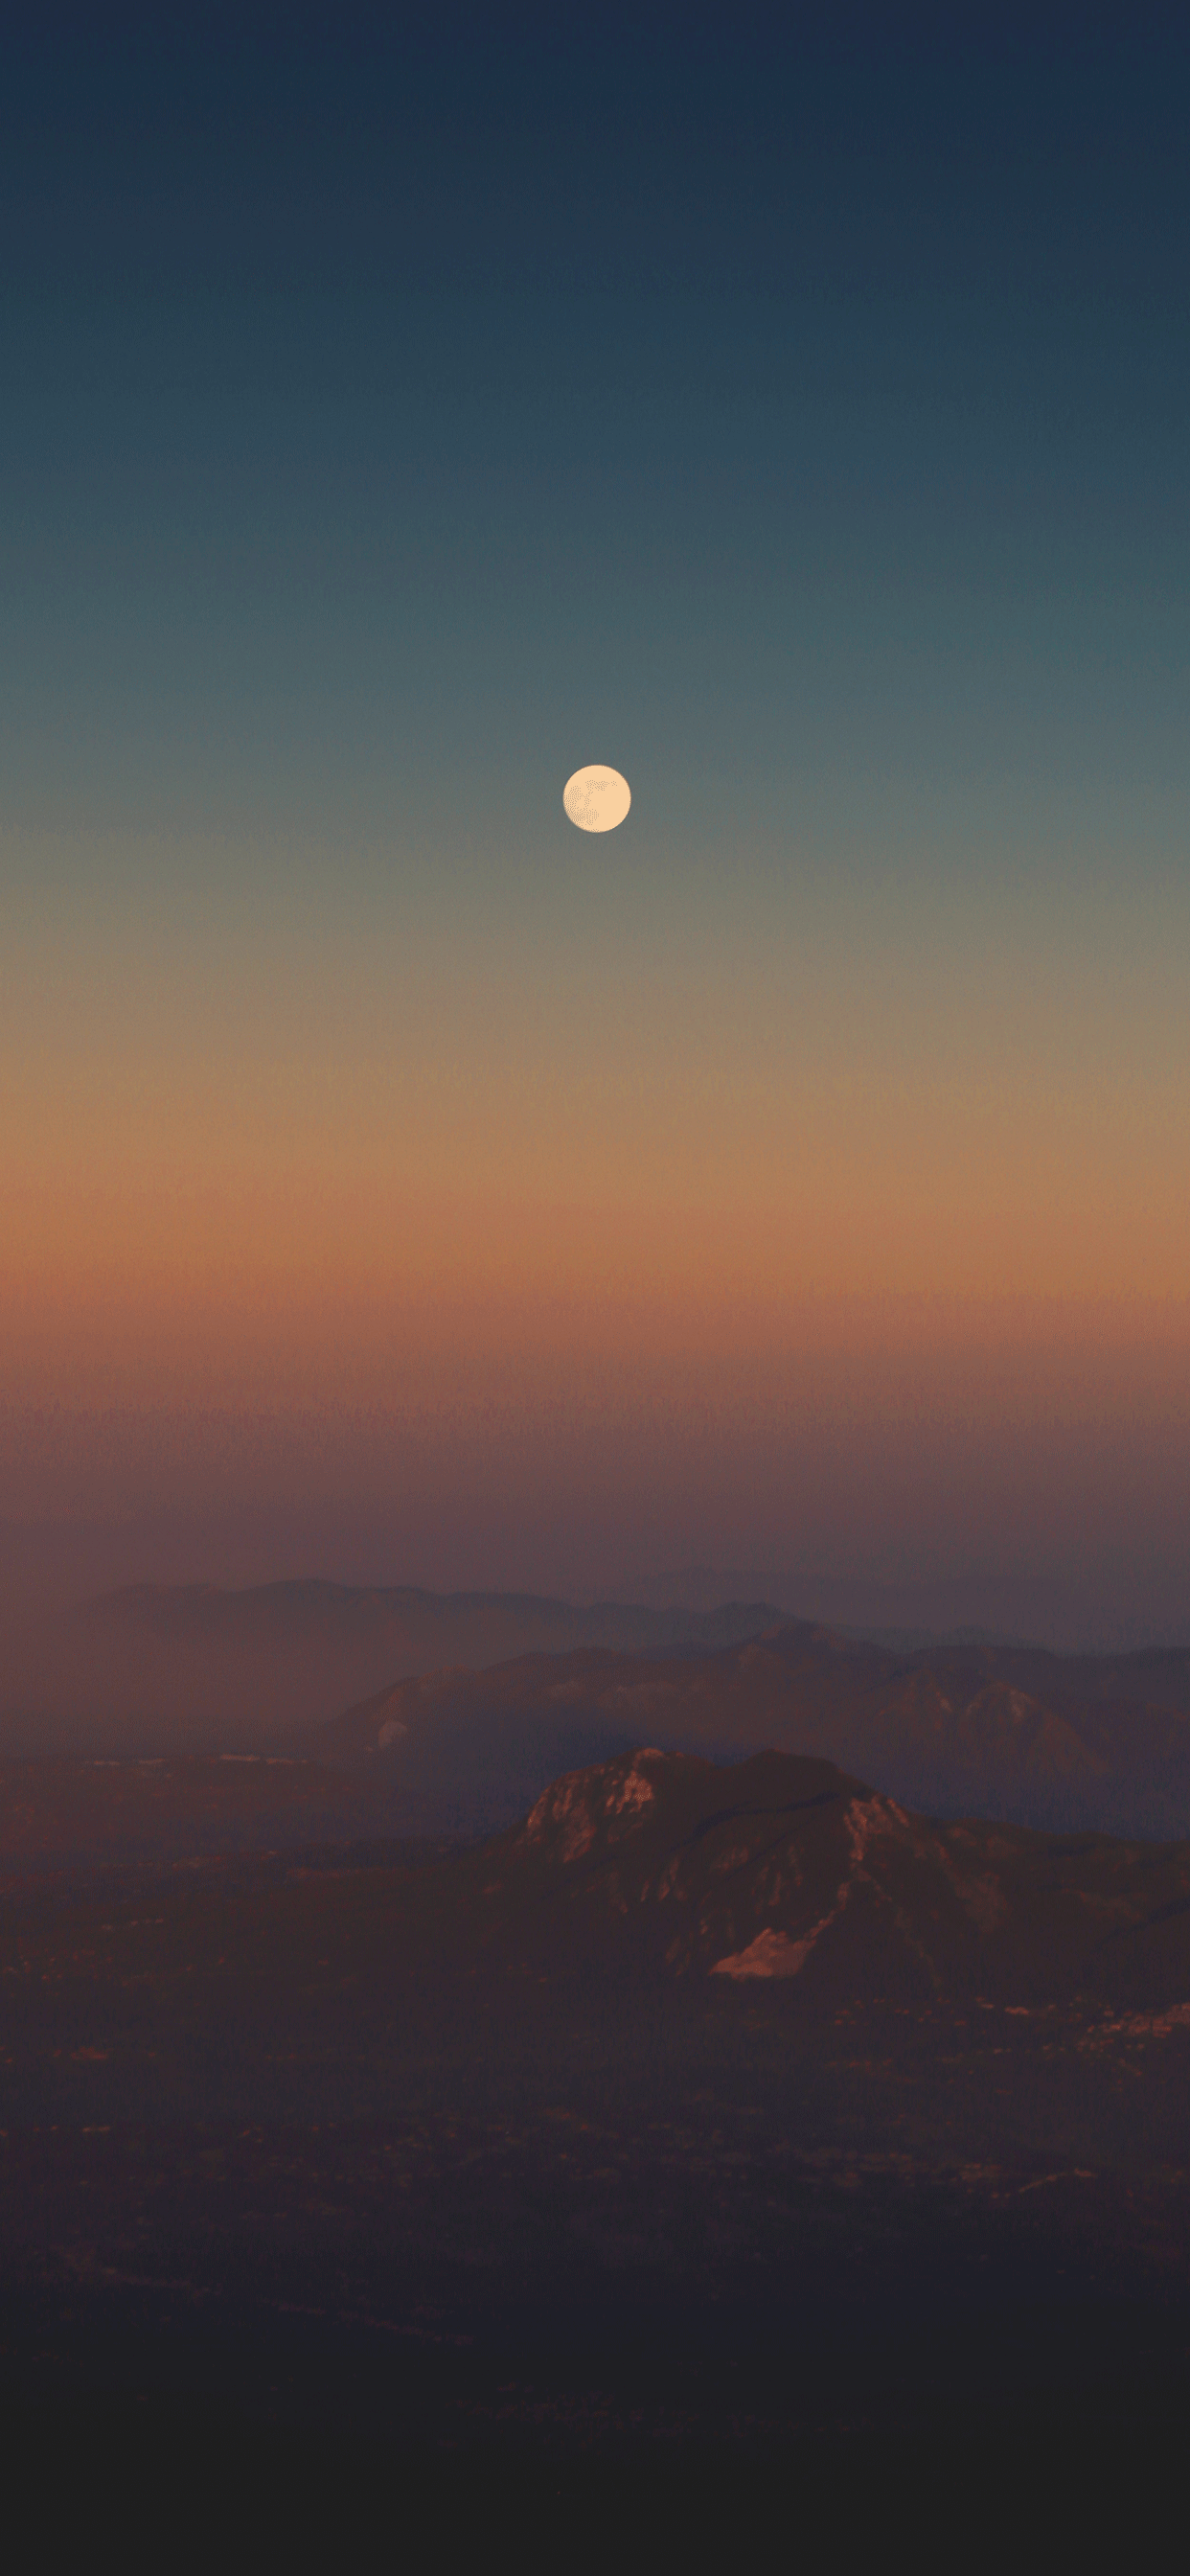 iPhone wallpapers moon italy Fonds d'écran iPhone du 02/07/2019